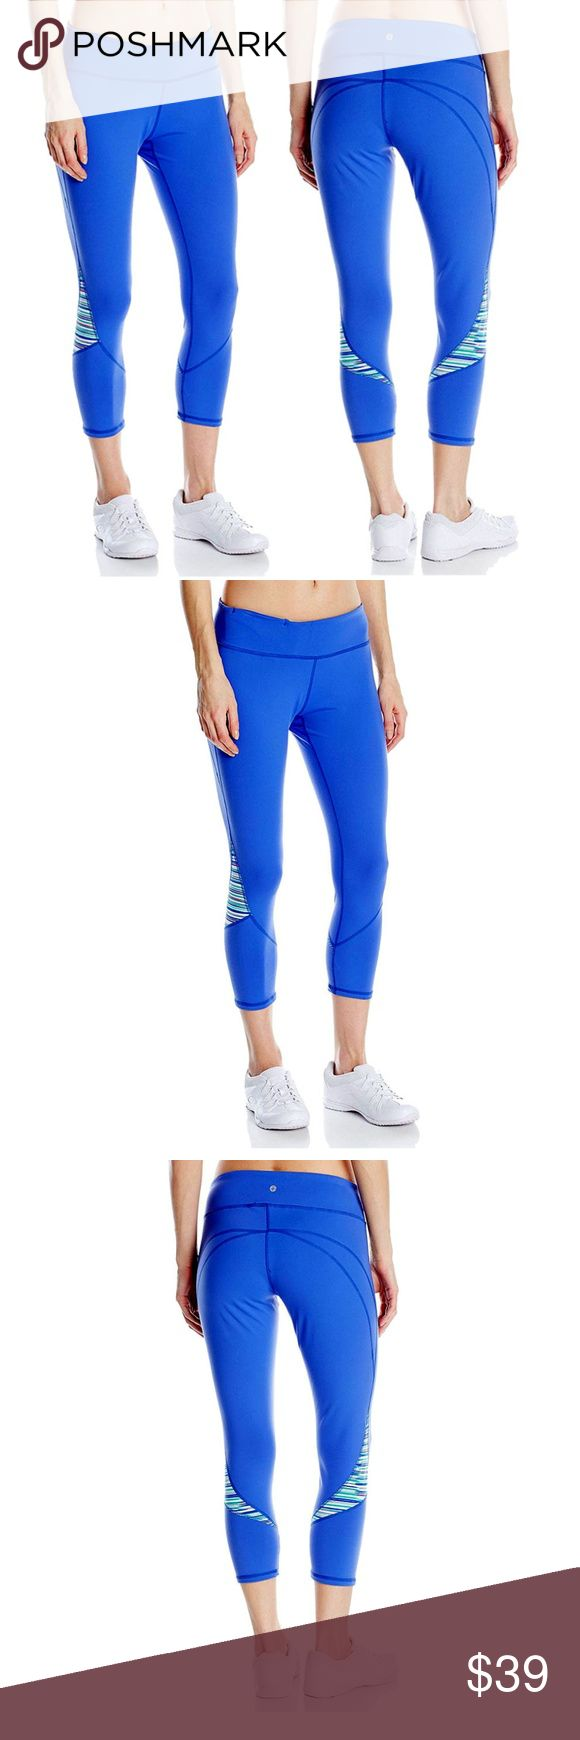 Soybu  Women's Sylvie Gym Workout Capri Leggings ✔Performance wear ready, the Sylvie Capri's Power-FLEX contours in all the right places.  ✔Features: Soft material that won't irritate skin, Wrinkle Resistant, Quick Dry & Stretch, Moisture Wicking & Breathable  ✔Material: 87% Nylon / 13% Spandex and 44% Recycled Polyester/44% Virgin Polyester/12% Spandex  ✔Size: XL (please see photos for waist, knee, hem, hips and thigh circumference and other measurements)  ✔Color: Greek Isle/Blue…